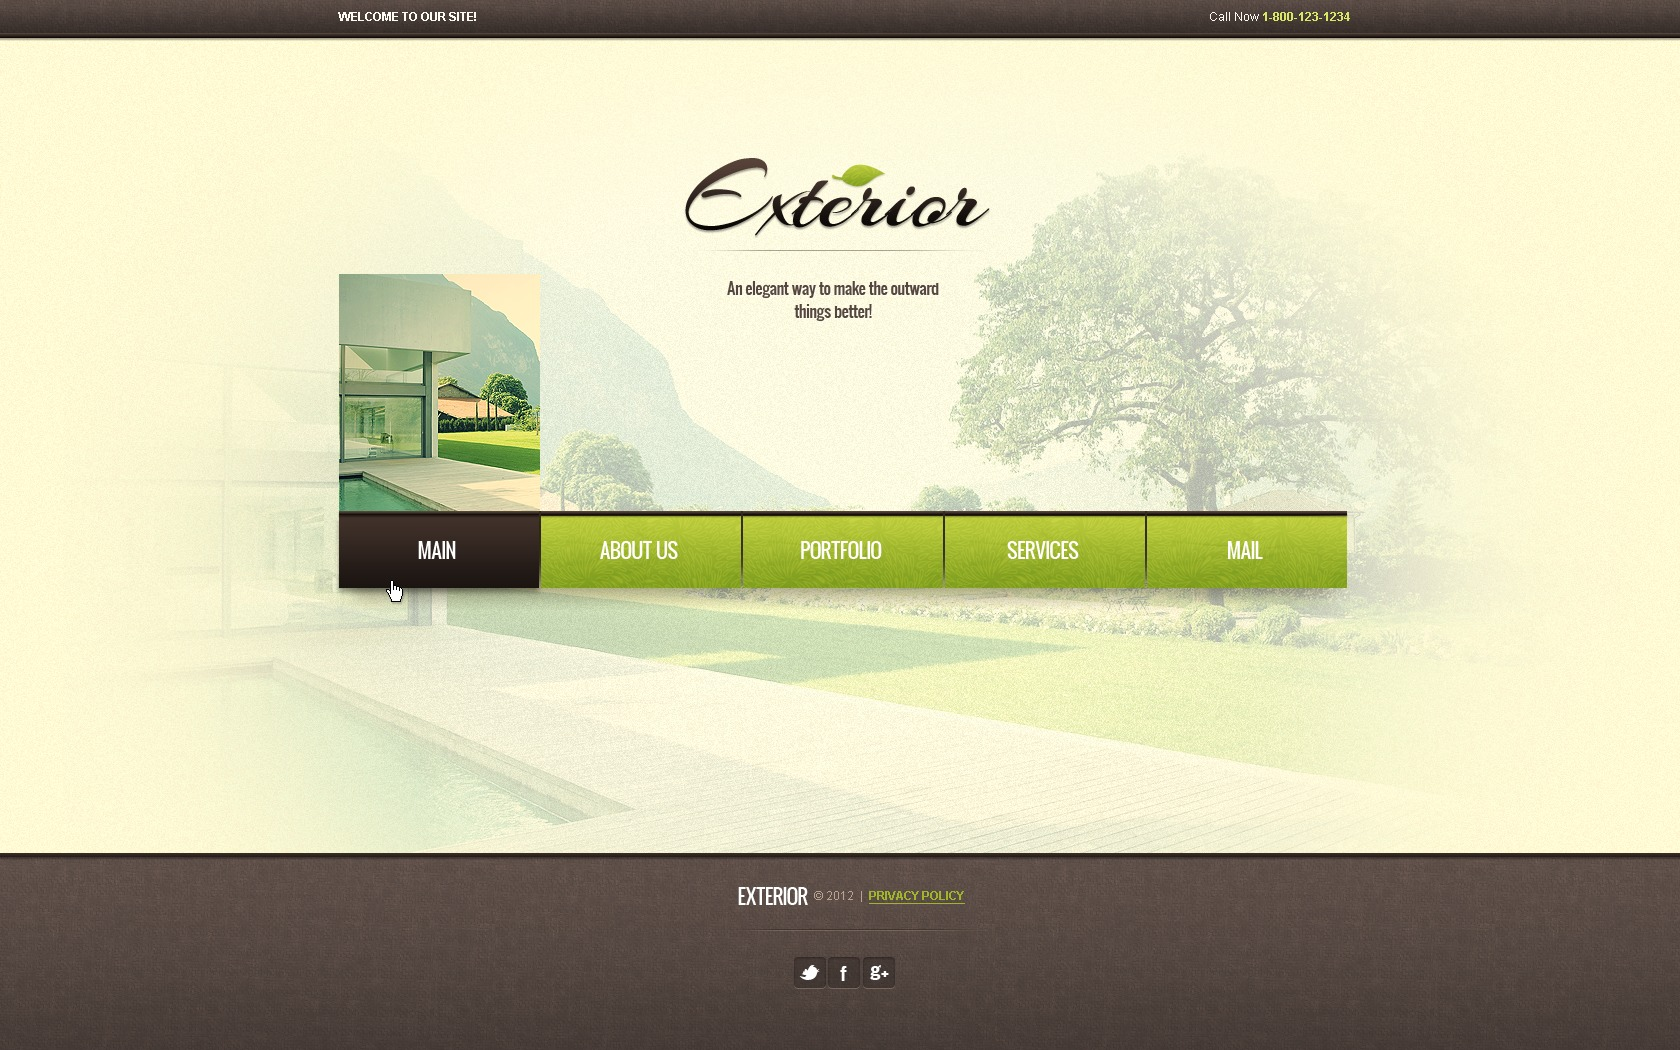 Exterior design website template 38438 for Exterior design website templates